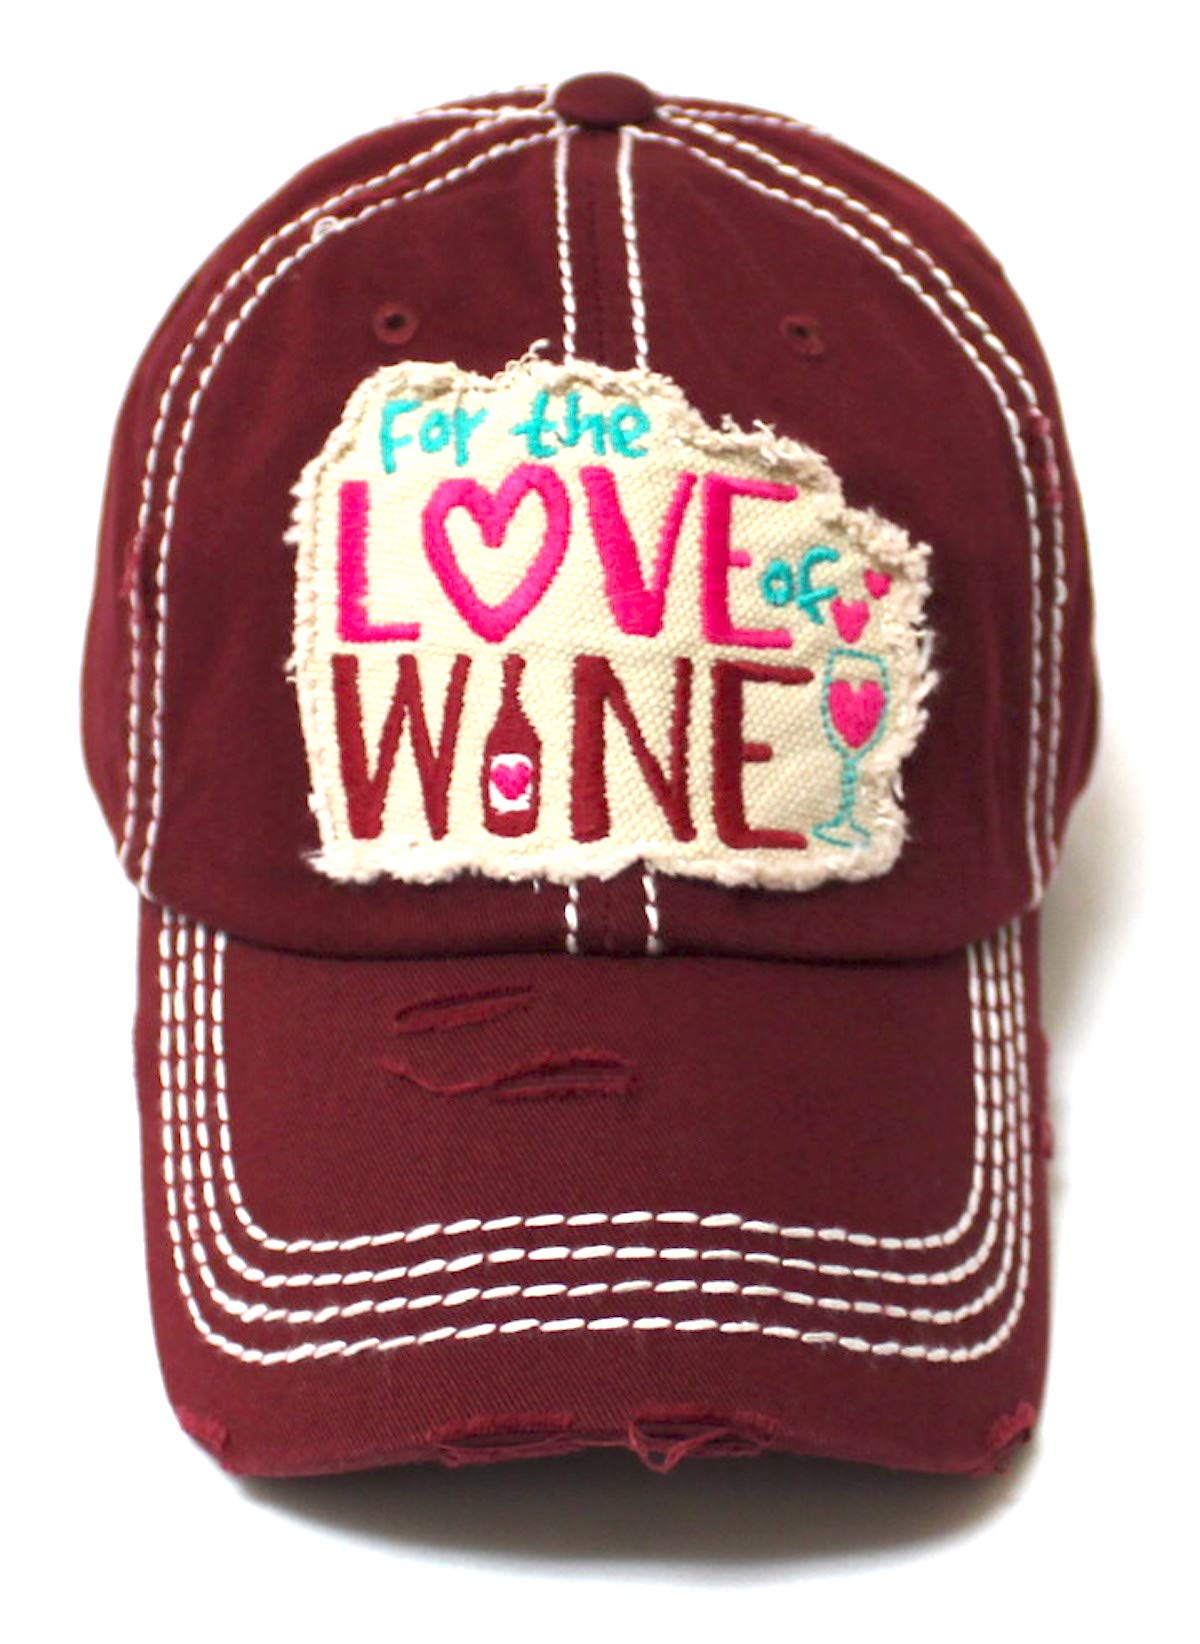 Women's Baseball Cap for The Love of Wine Patch Embroidery Hearts & Bubbles Monogram Hat, Vintage Burgundy - Caps 'N Vintage